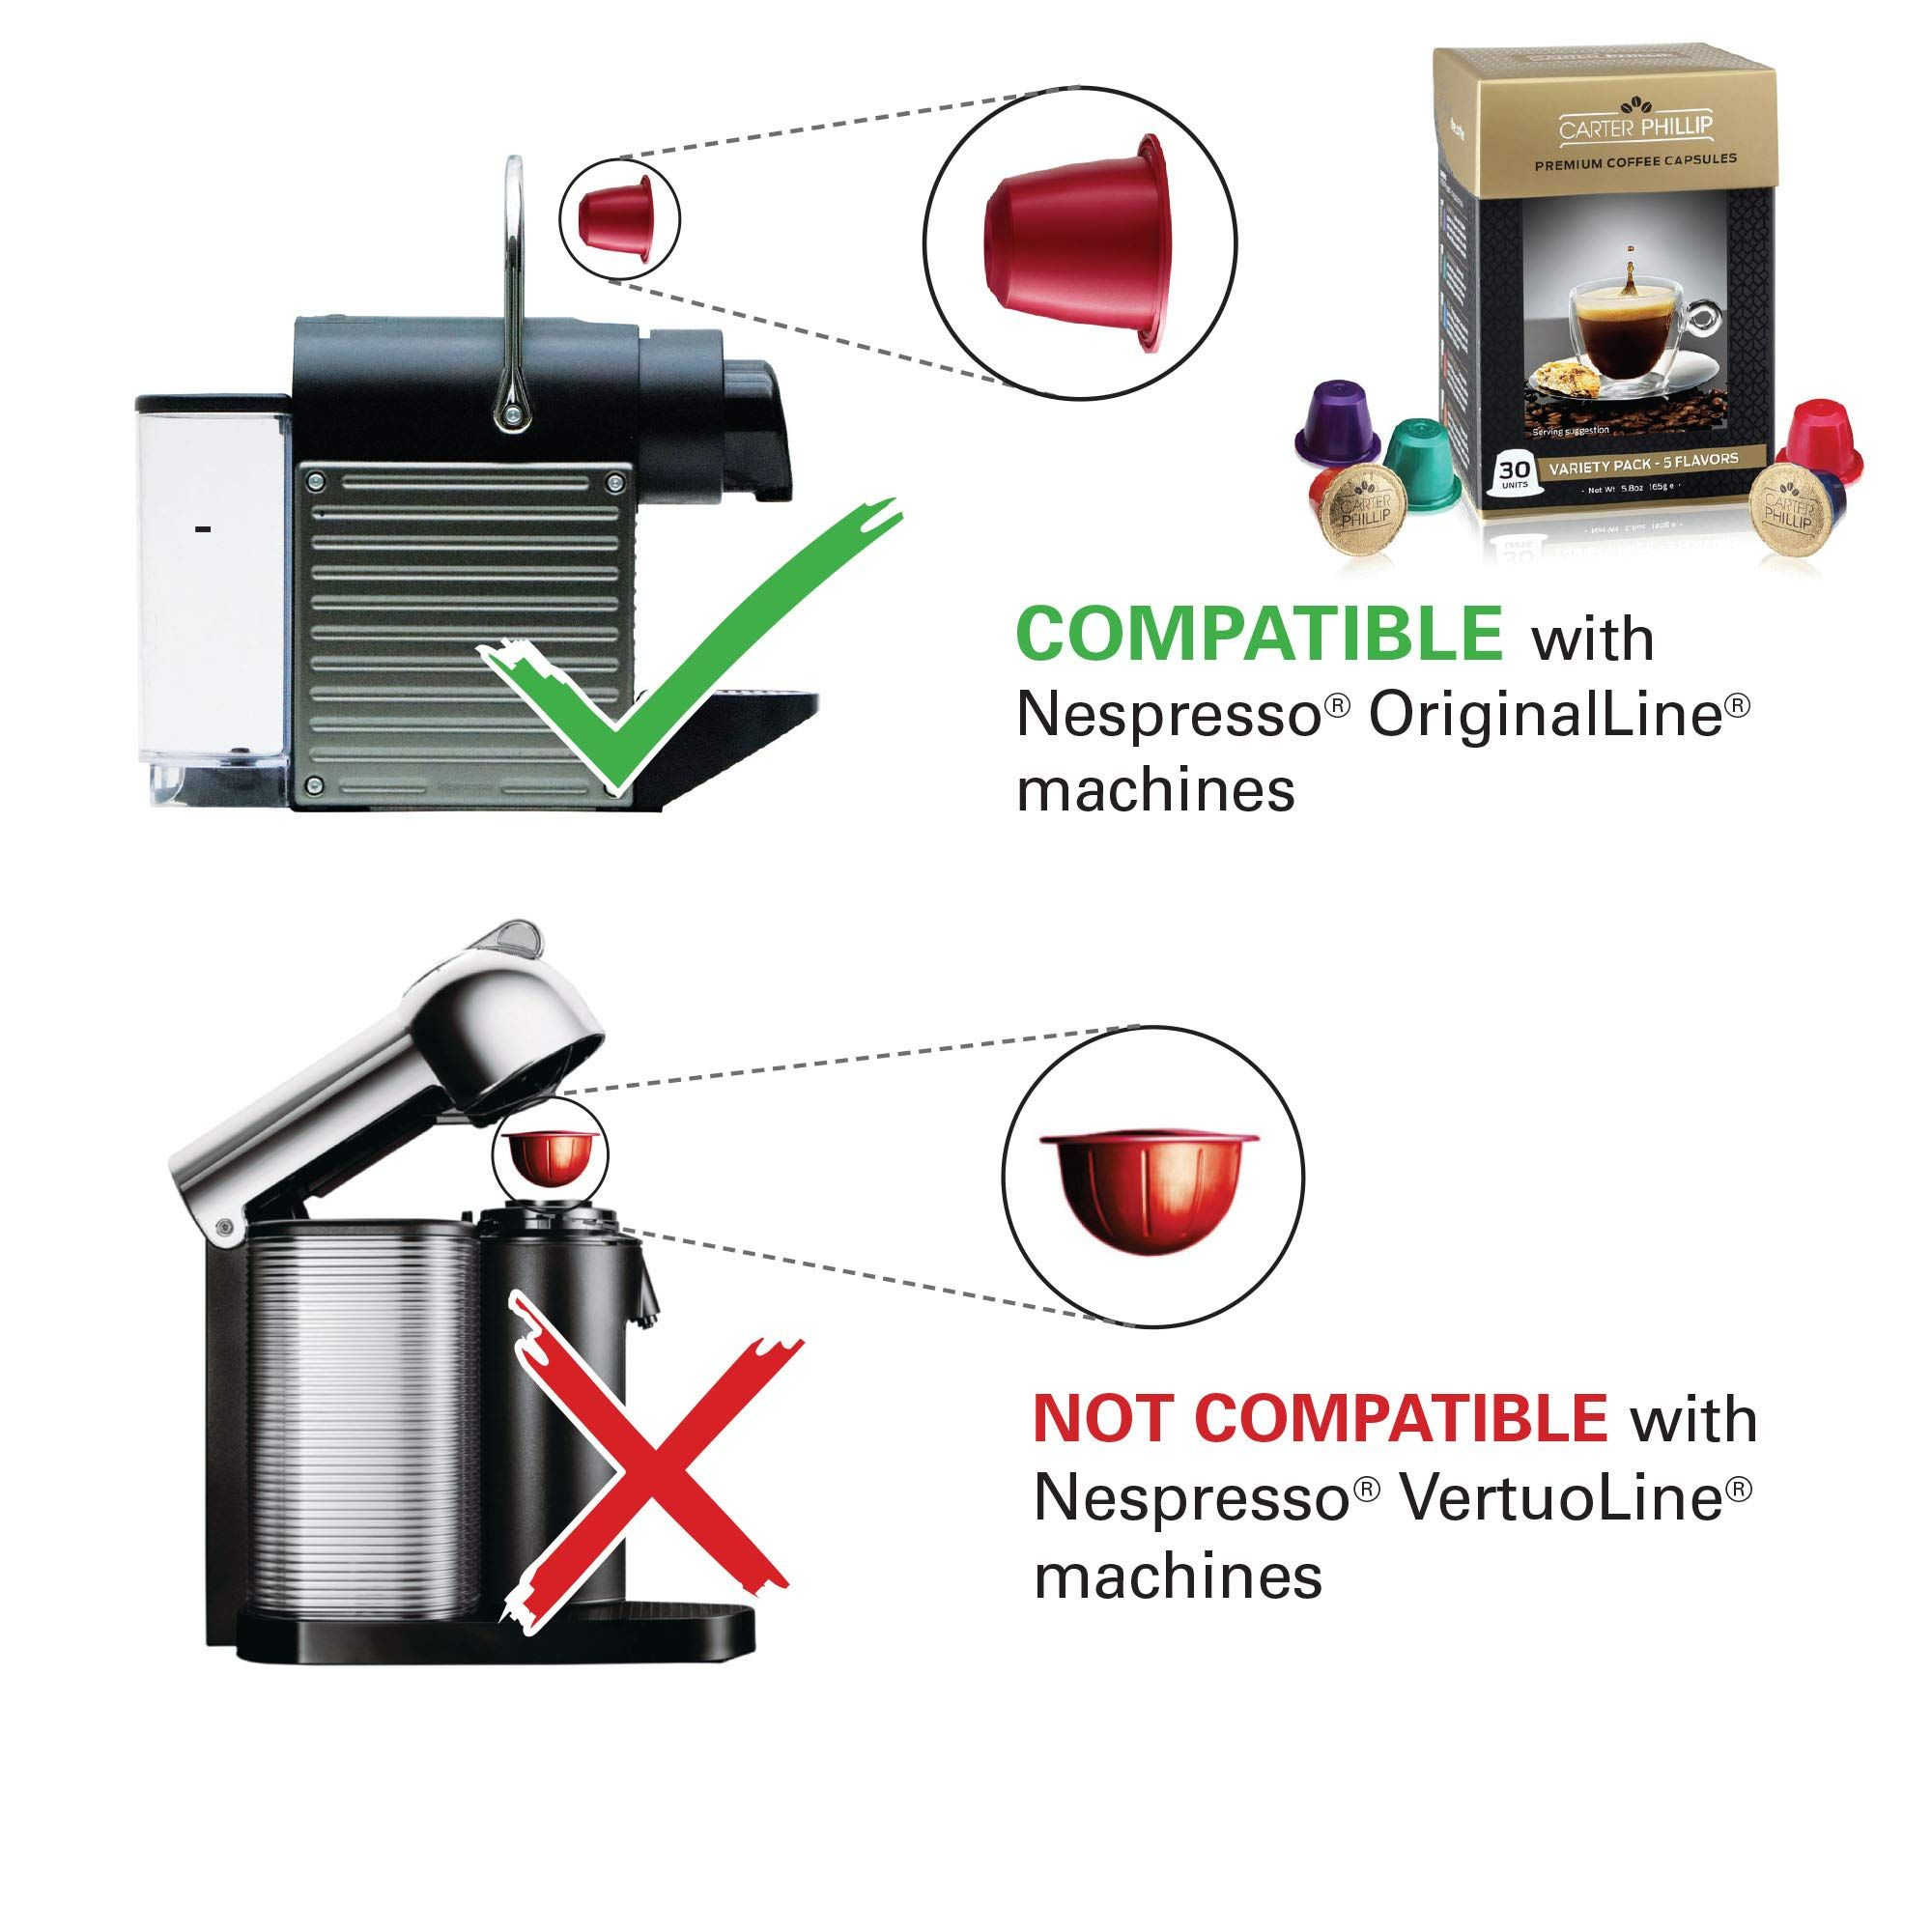 Espresso Capsules Compatible with Nespresso OriginalLine